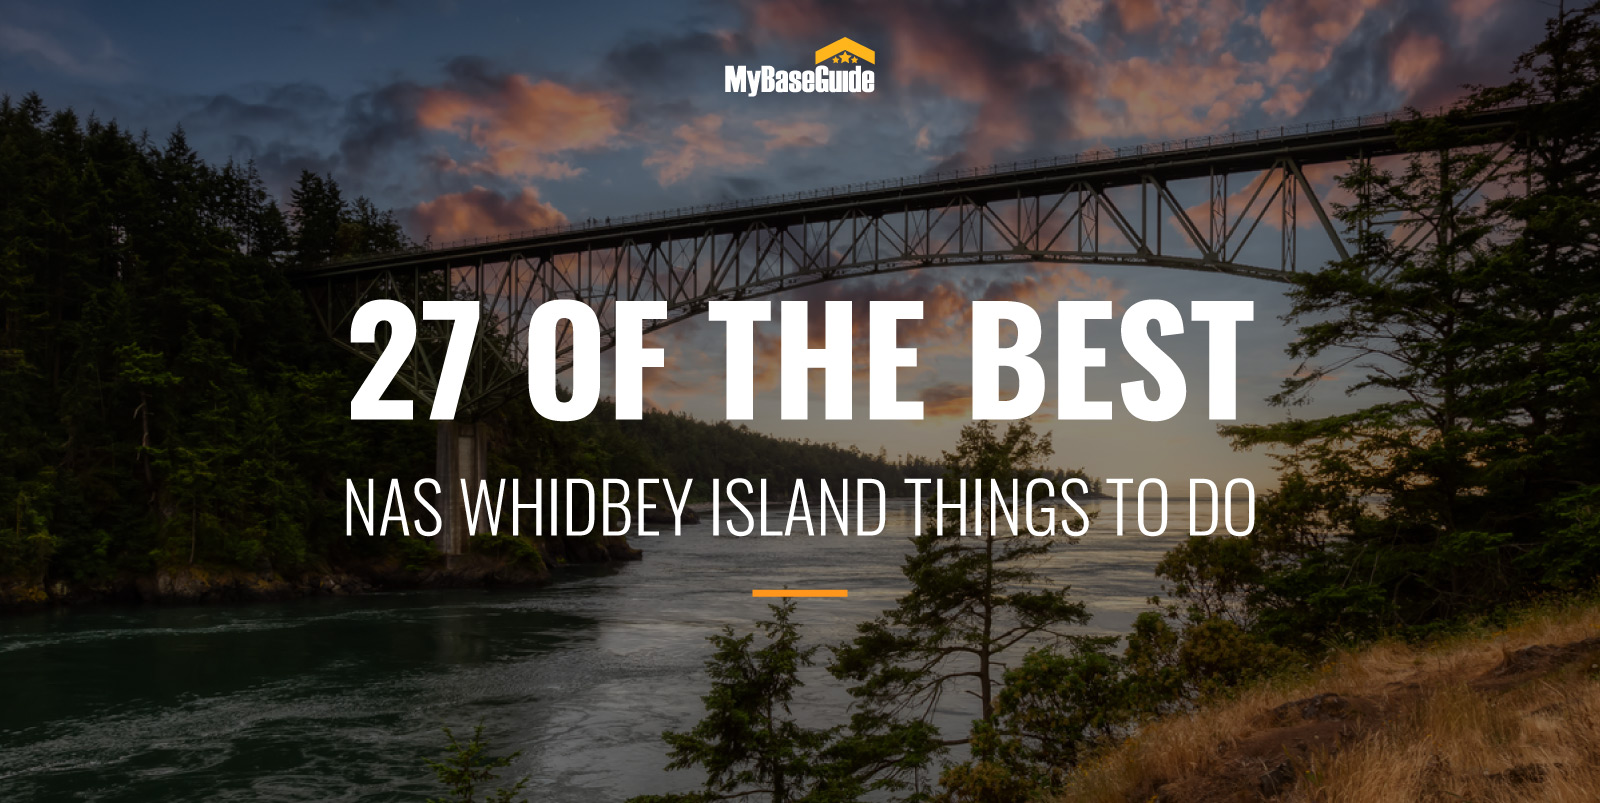 27 Of the Best NAS Whidbey Island Things to Do